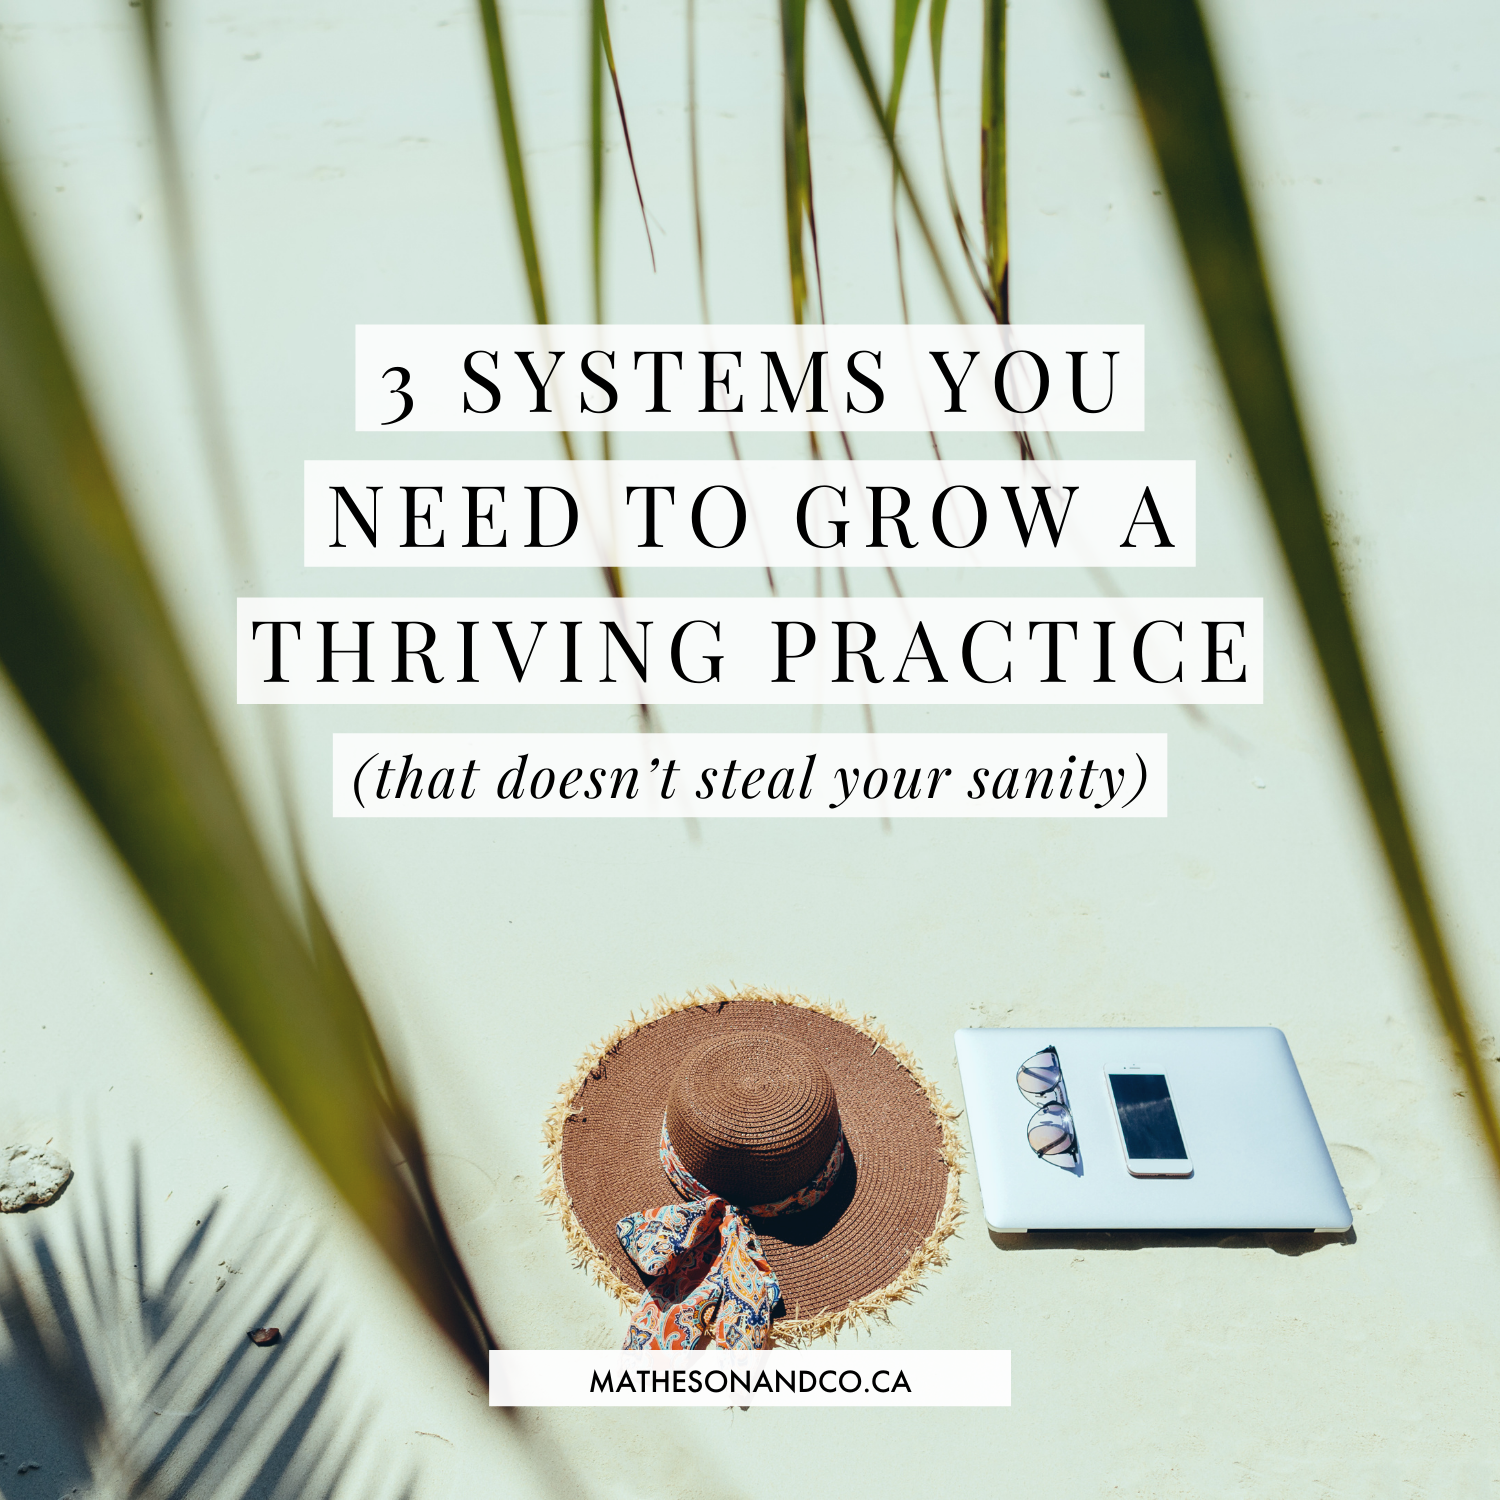 3 Systems You Need to Grow a Thriving Practice (That doesn't steal your sanity)